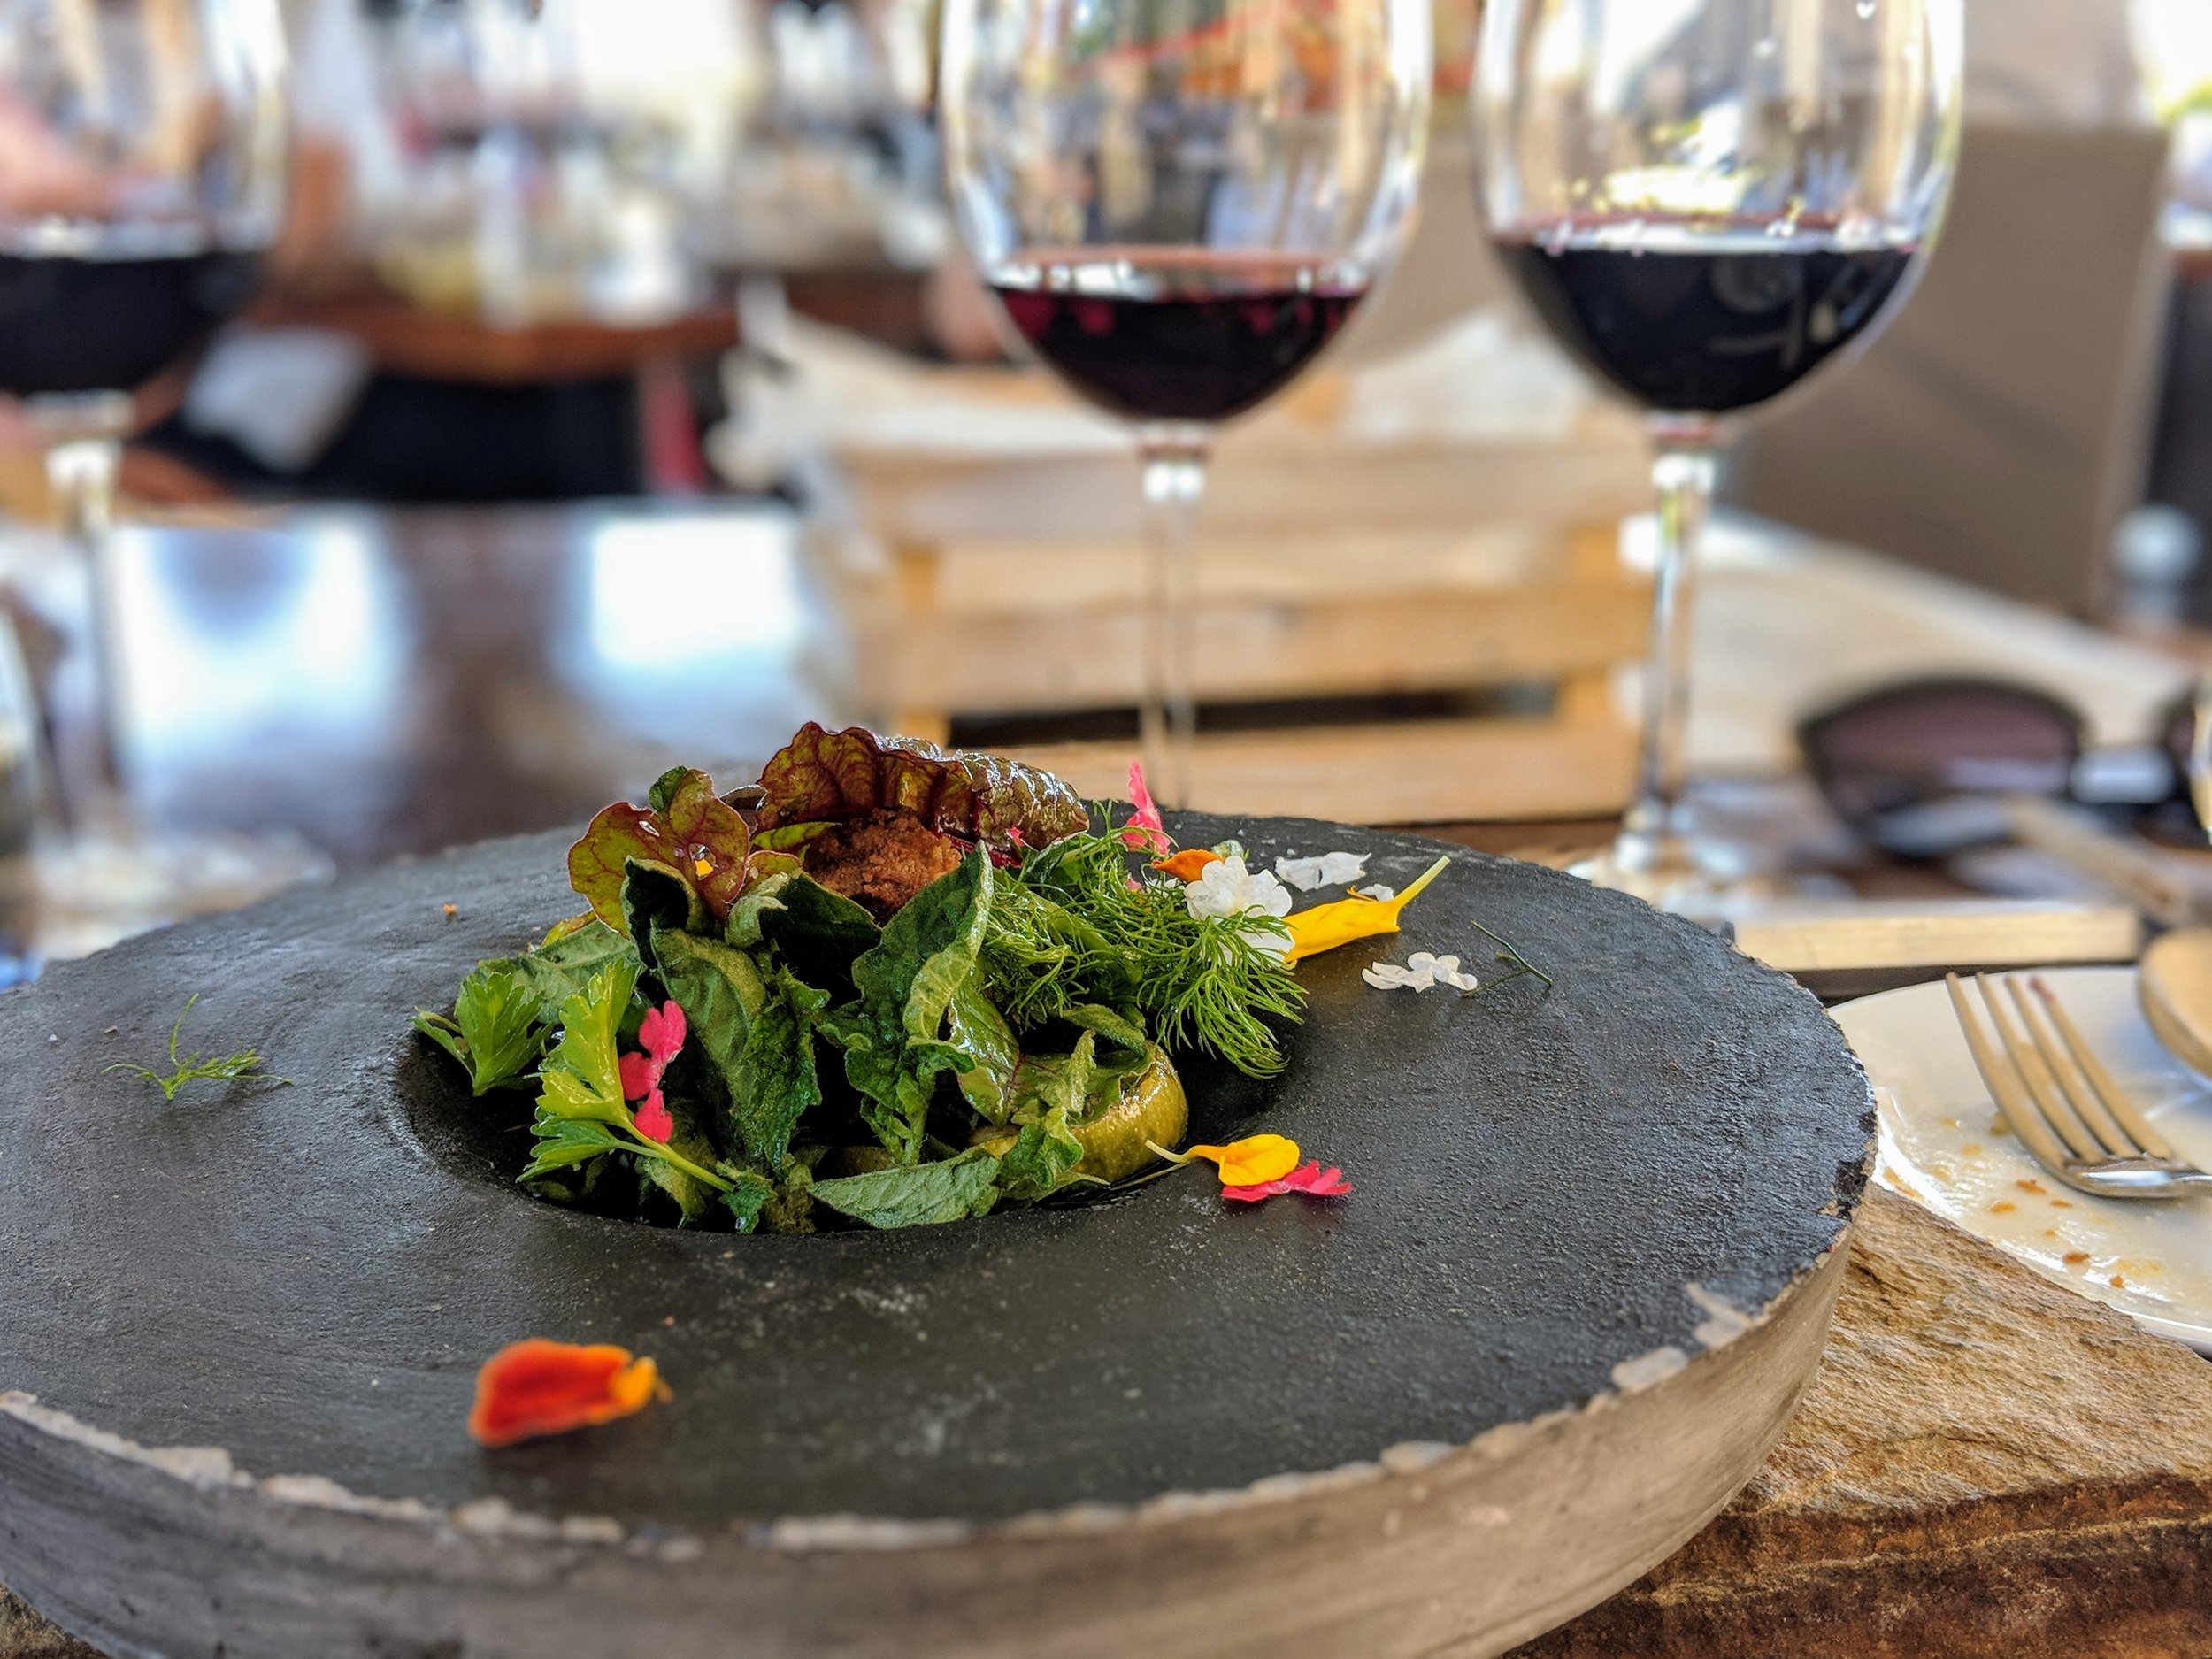 Guest Winery: Cadas Cabernet 2016 with stewed pork and seasonal vegetables